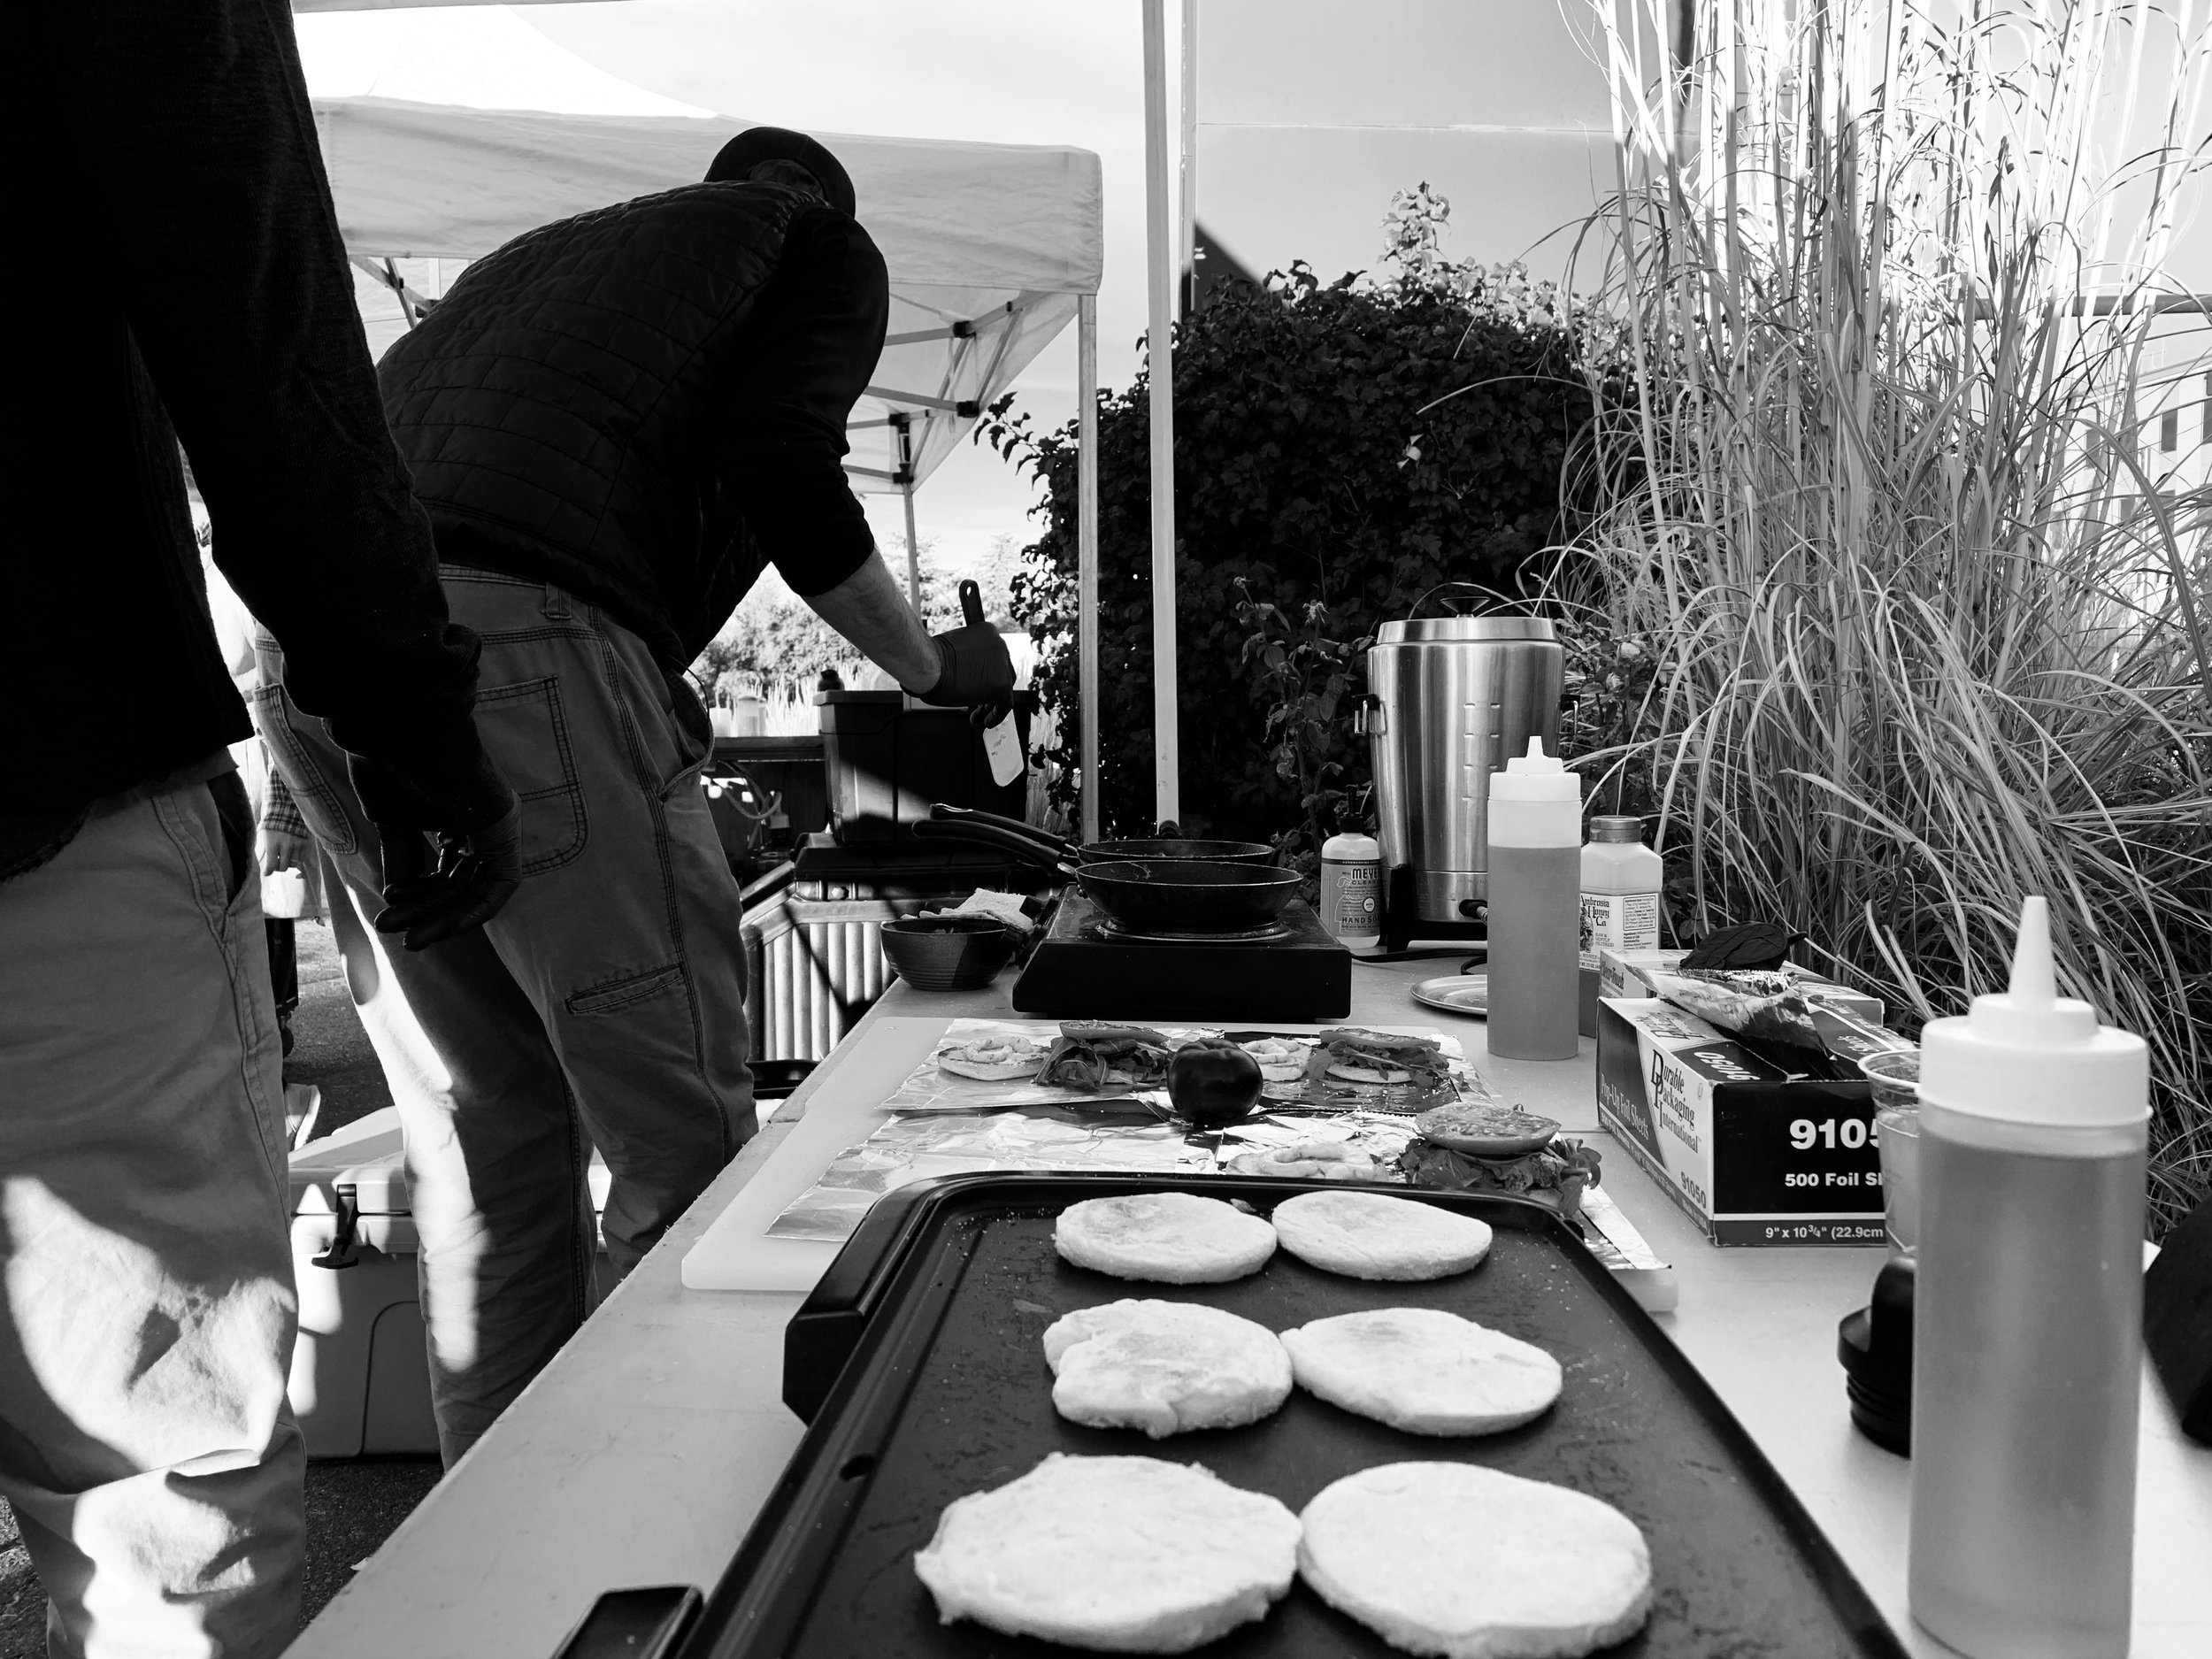 The griddle set up at the farmers market.